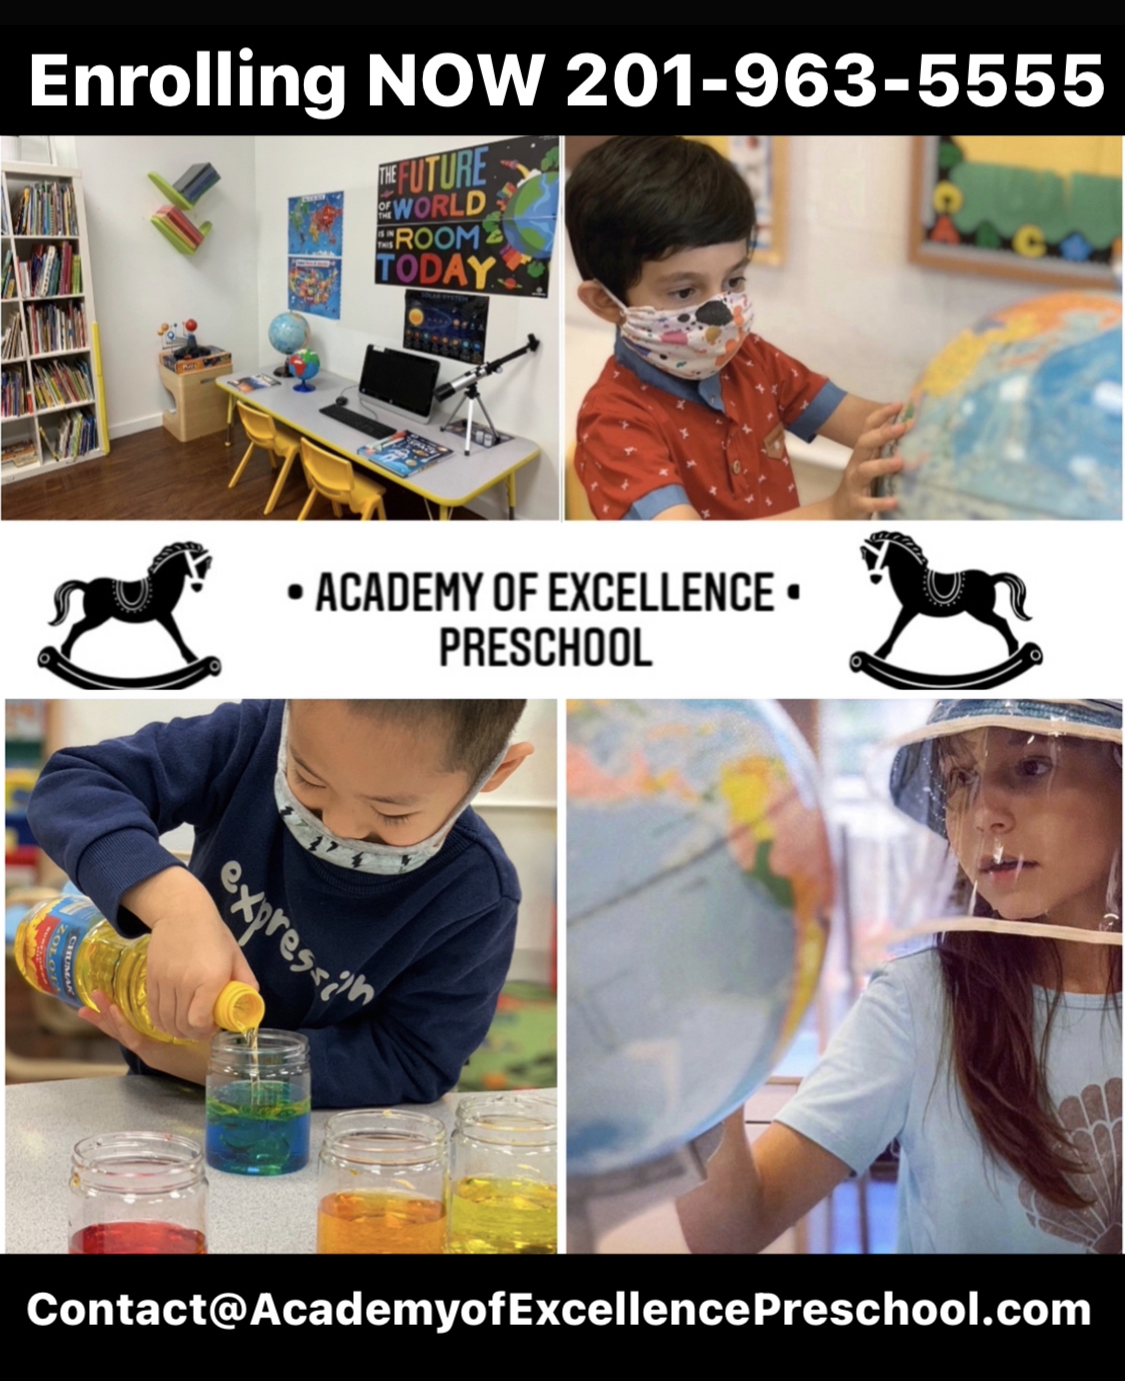 Academy of Excellence Preschool